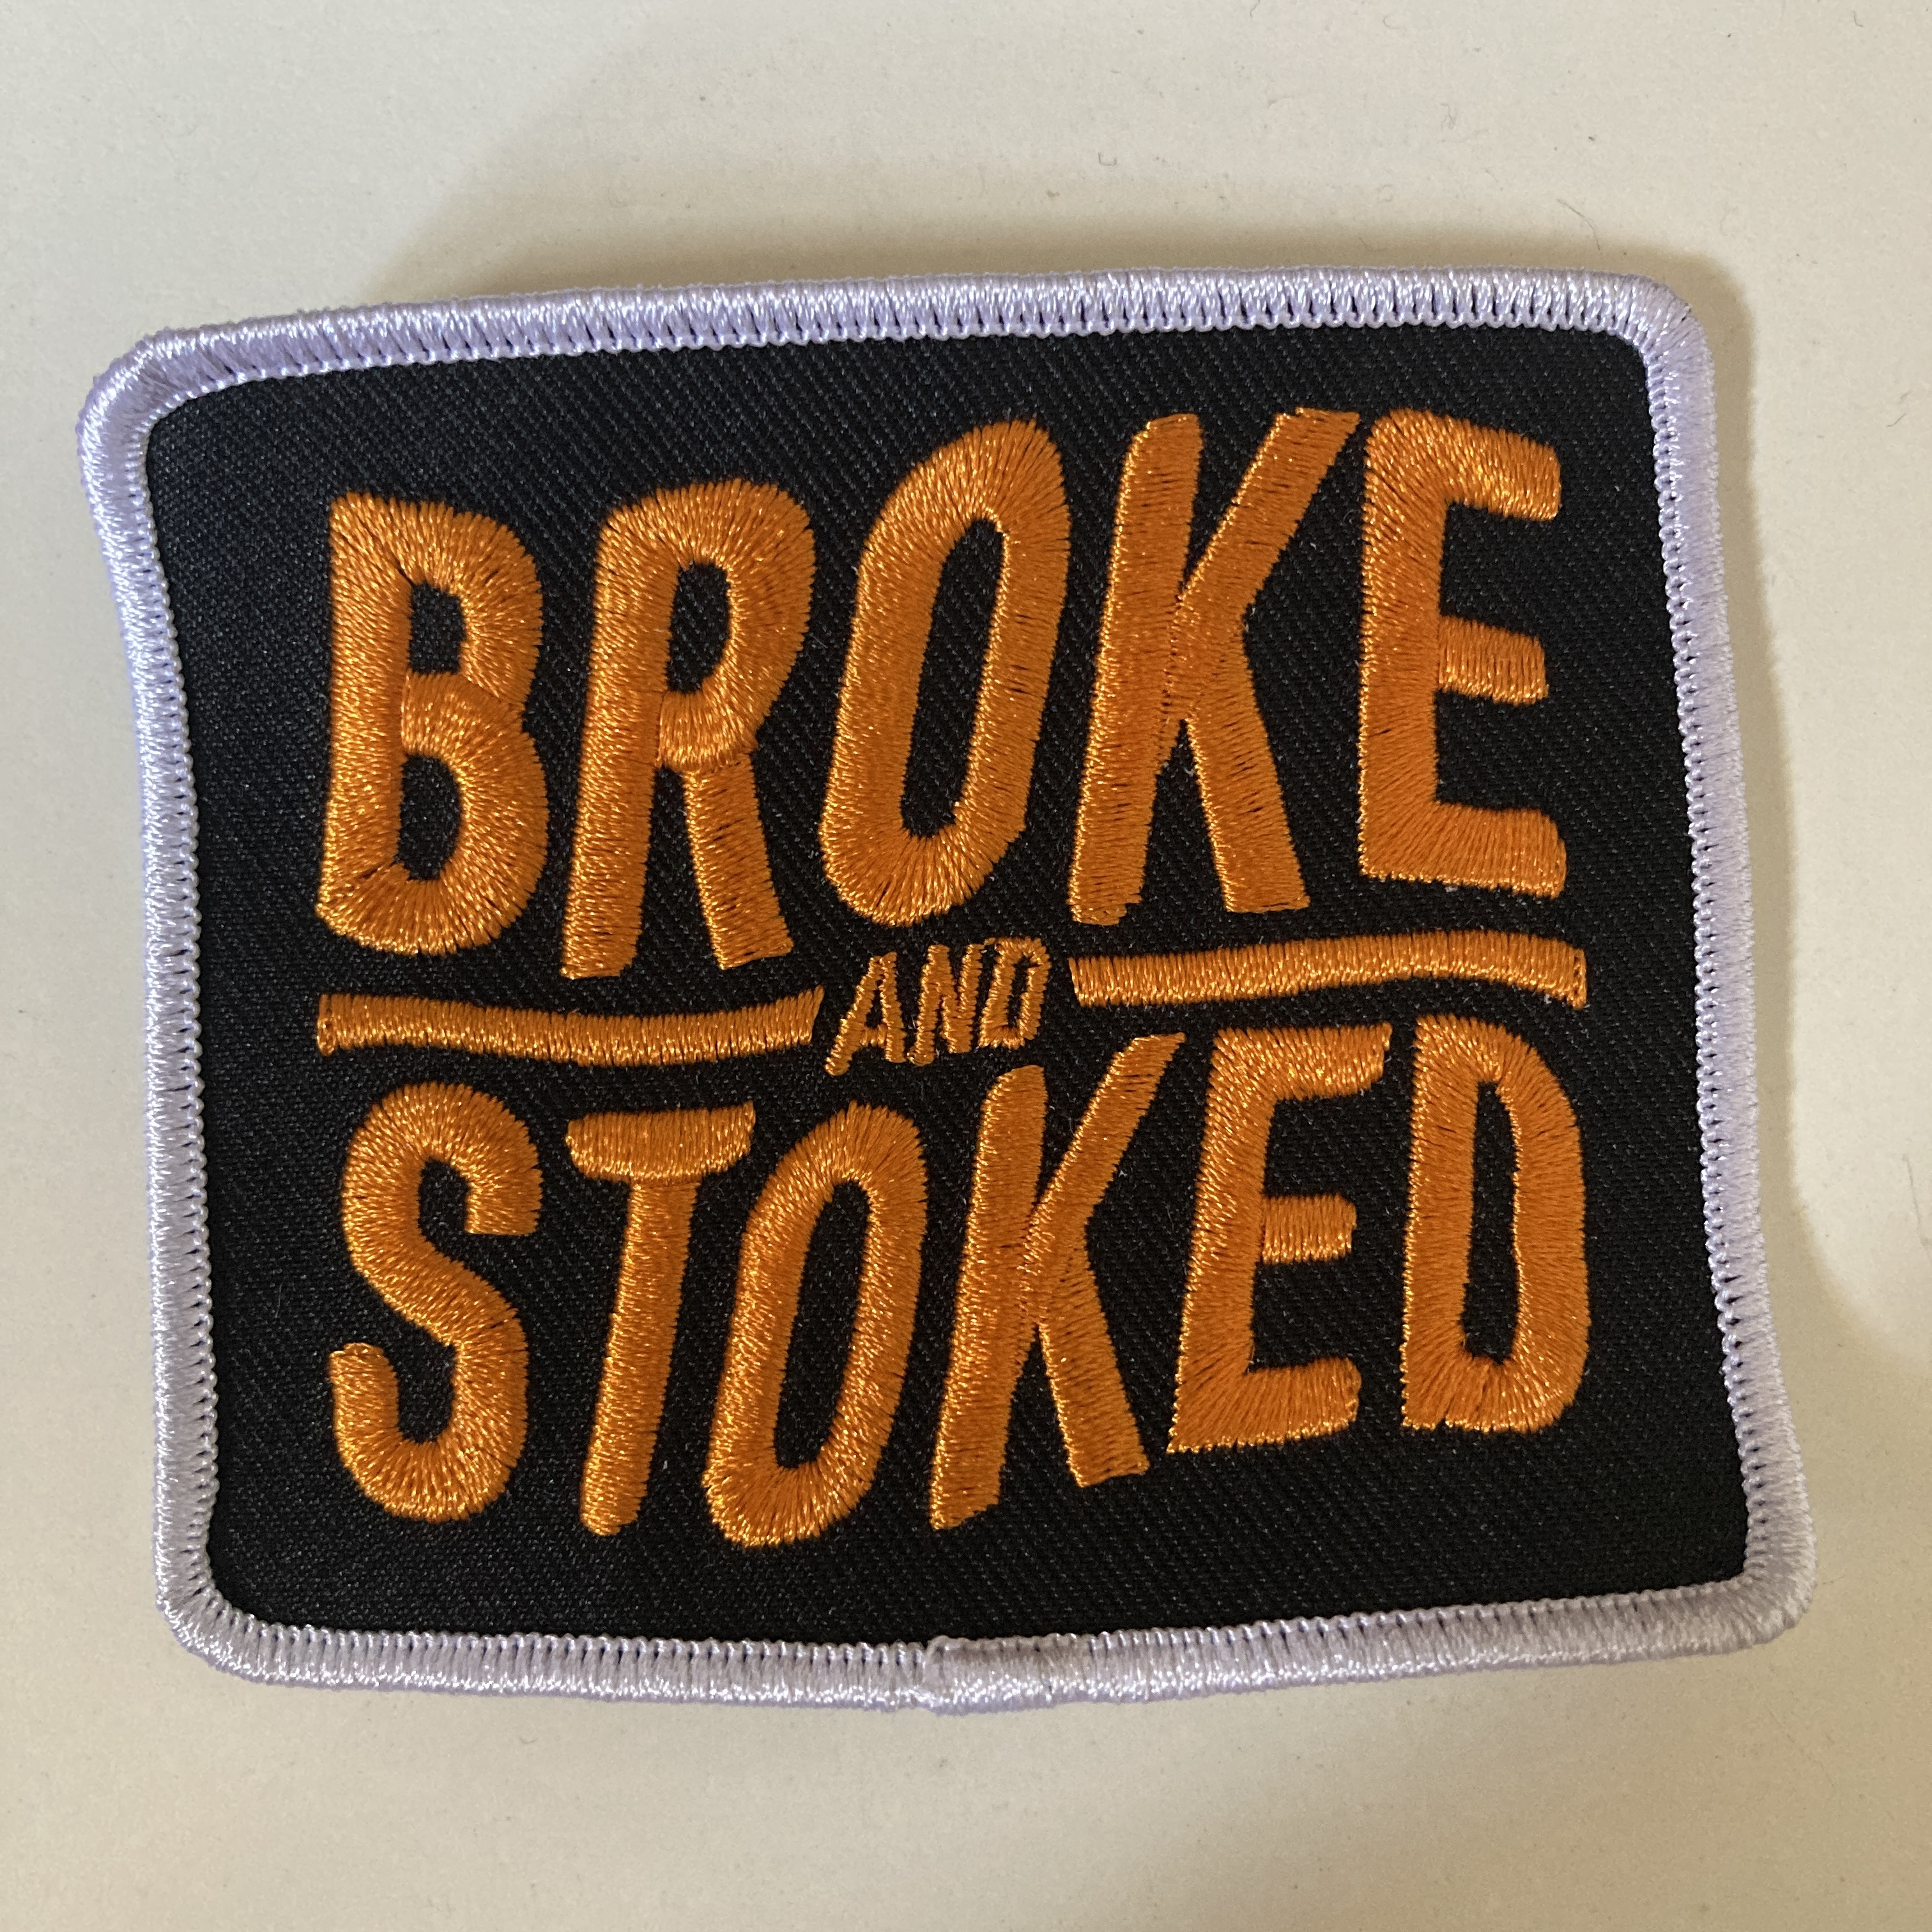 Broke and Stoked - patch Broke & Stoked